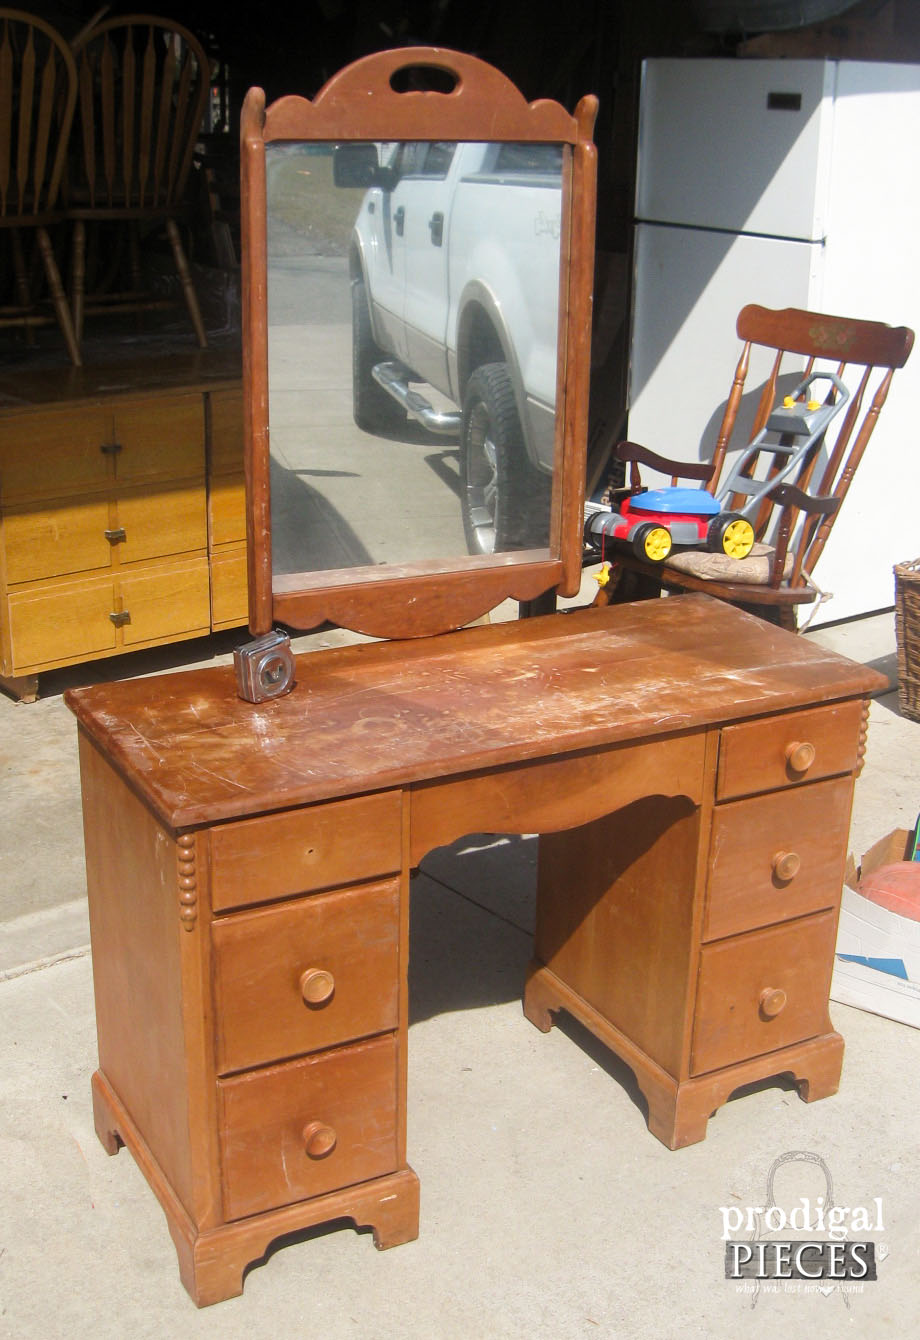 Vintage Cherry Vanity Before | Prodigal Pieces | www.prodigalpieces.com